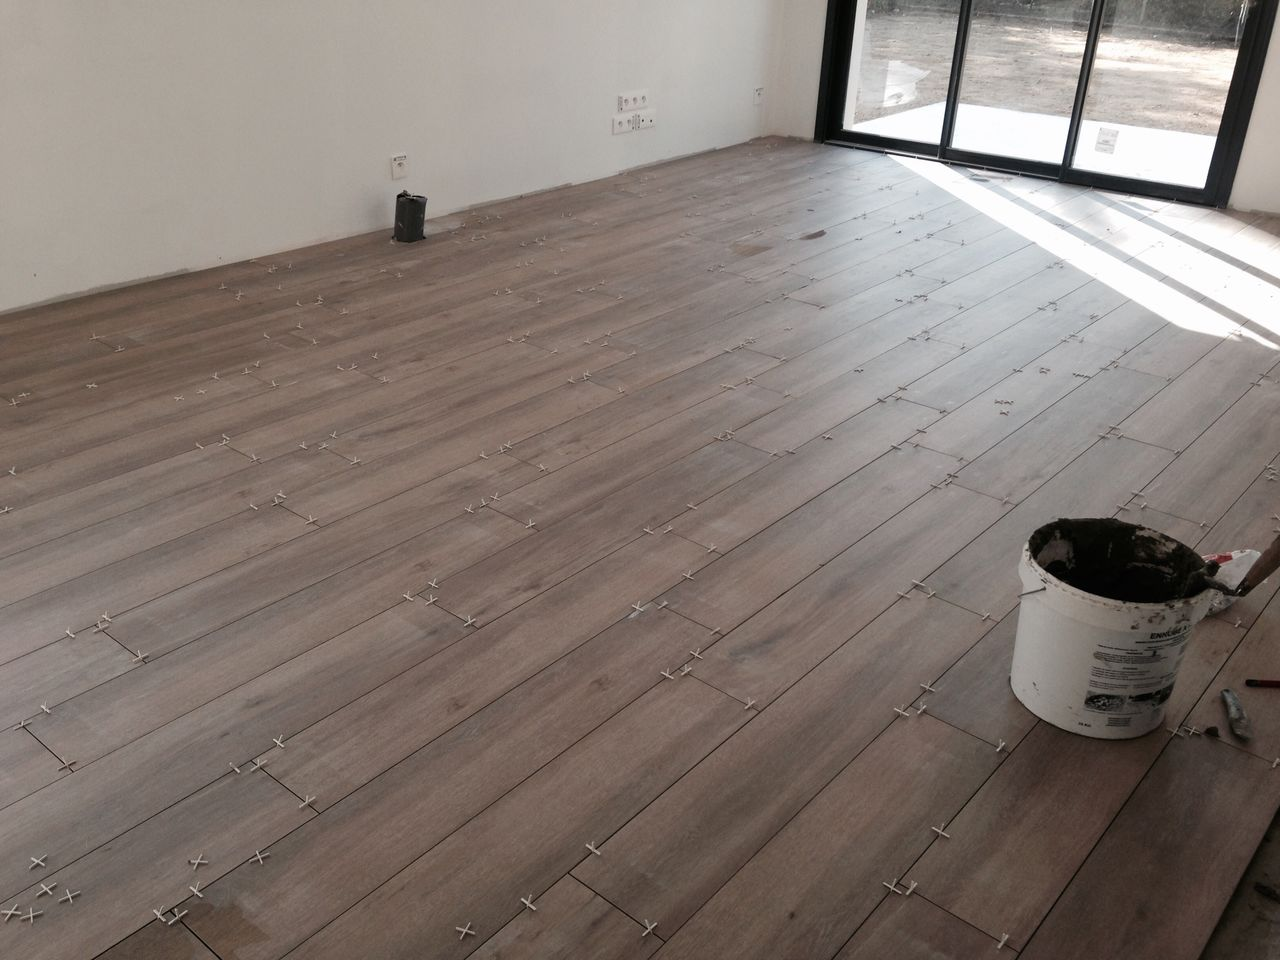 Quelle couleur de joints pour carrelage imitation parquet for Joint carrelage